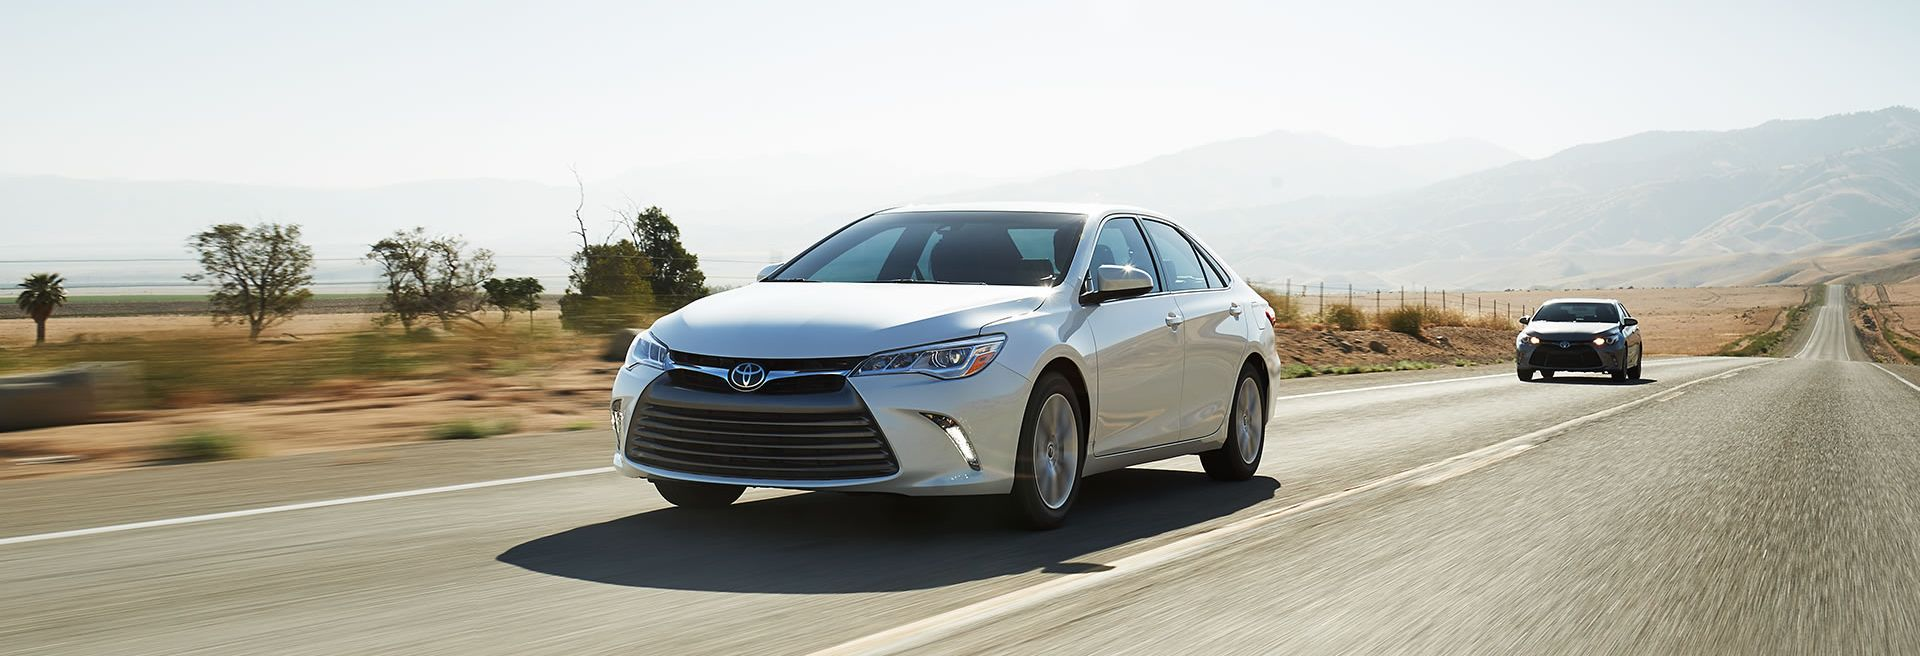 High Quality 2017 Toyota Camry Vs 2017 Nissan Altima In Rockford, IL